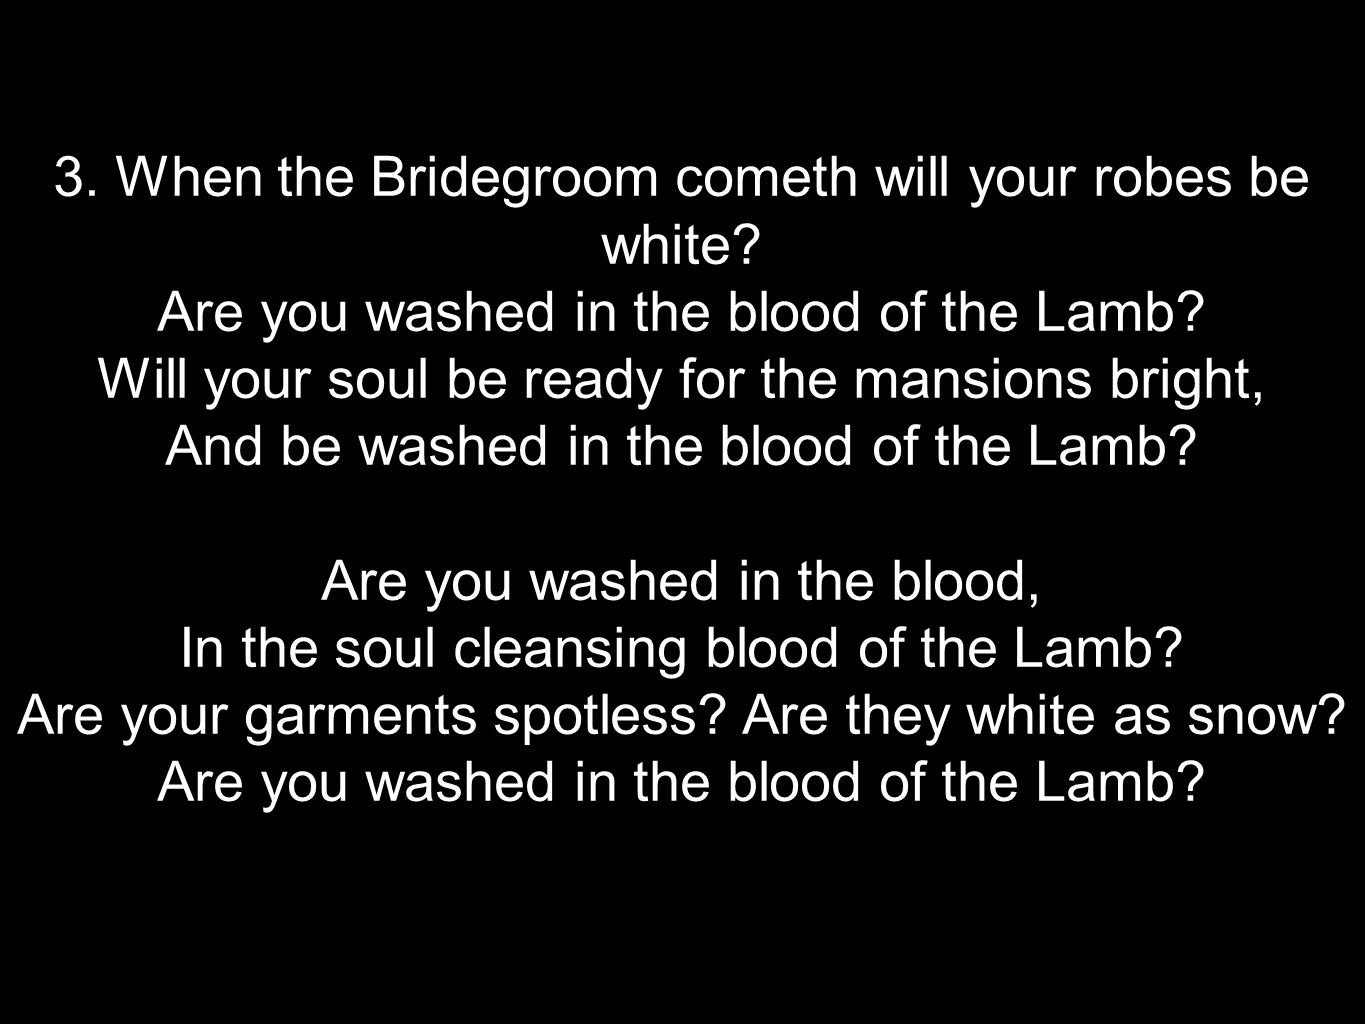 3. When the Bridegroom cometh will your robes be white? Are you washed in the blood of the Lamb? Will your soul be ready for the mansions bright, And